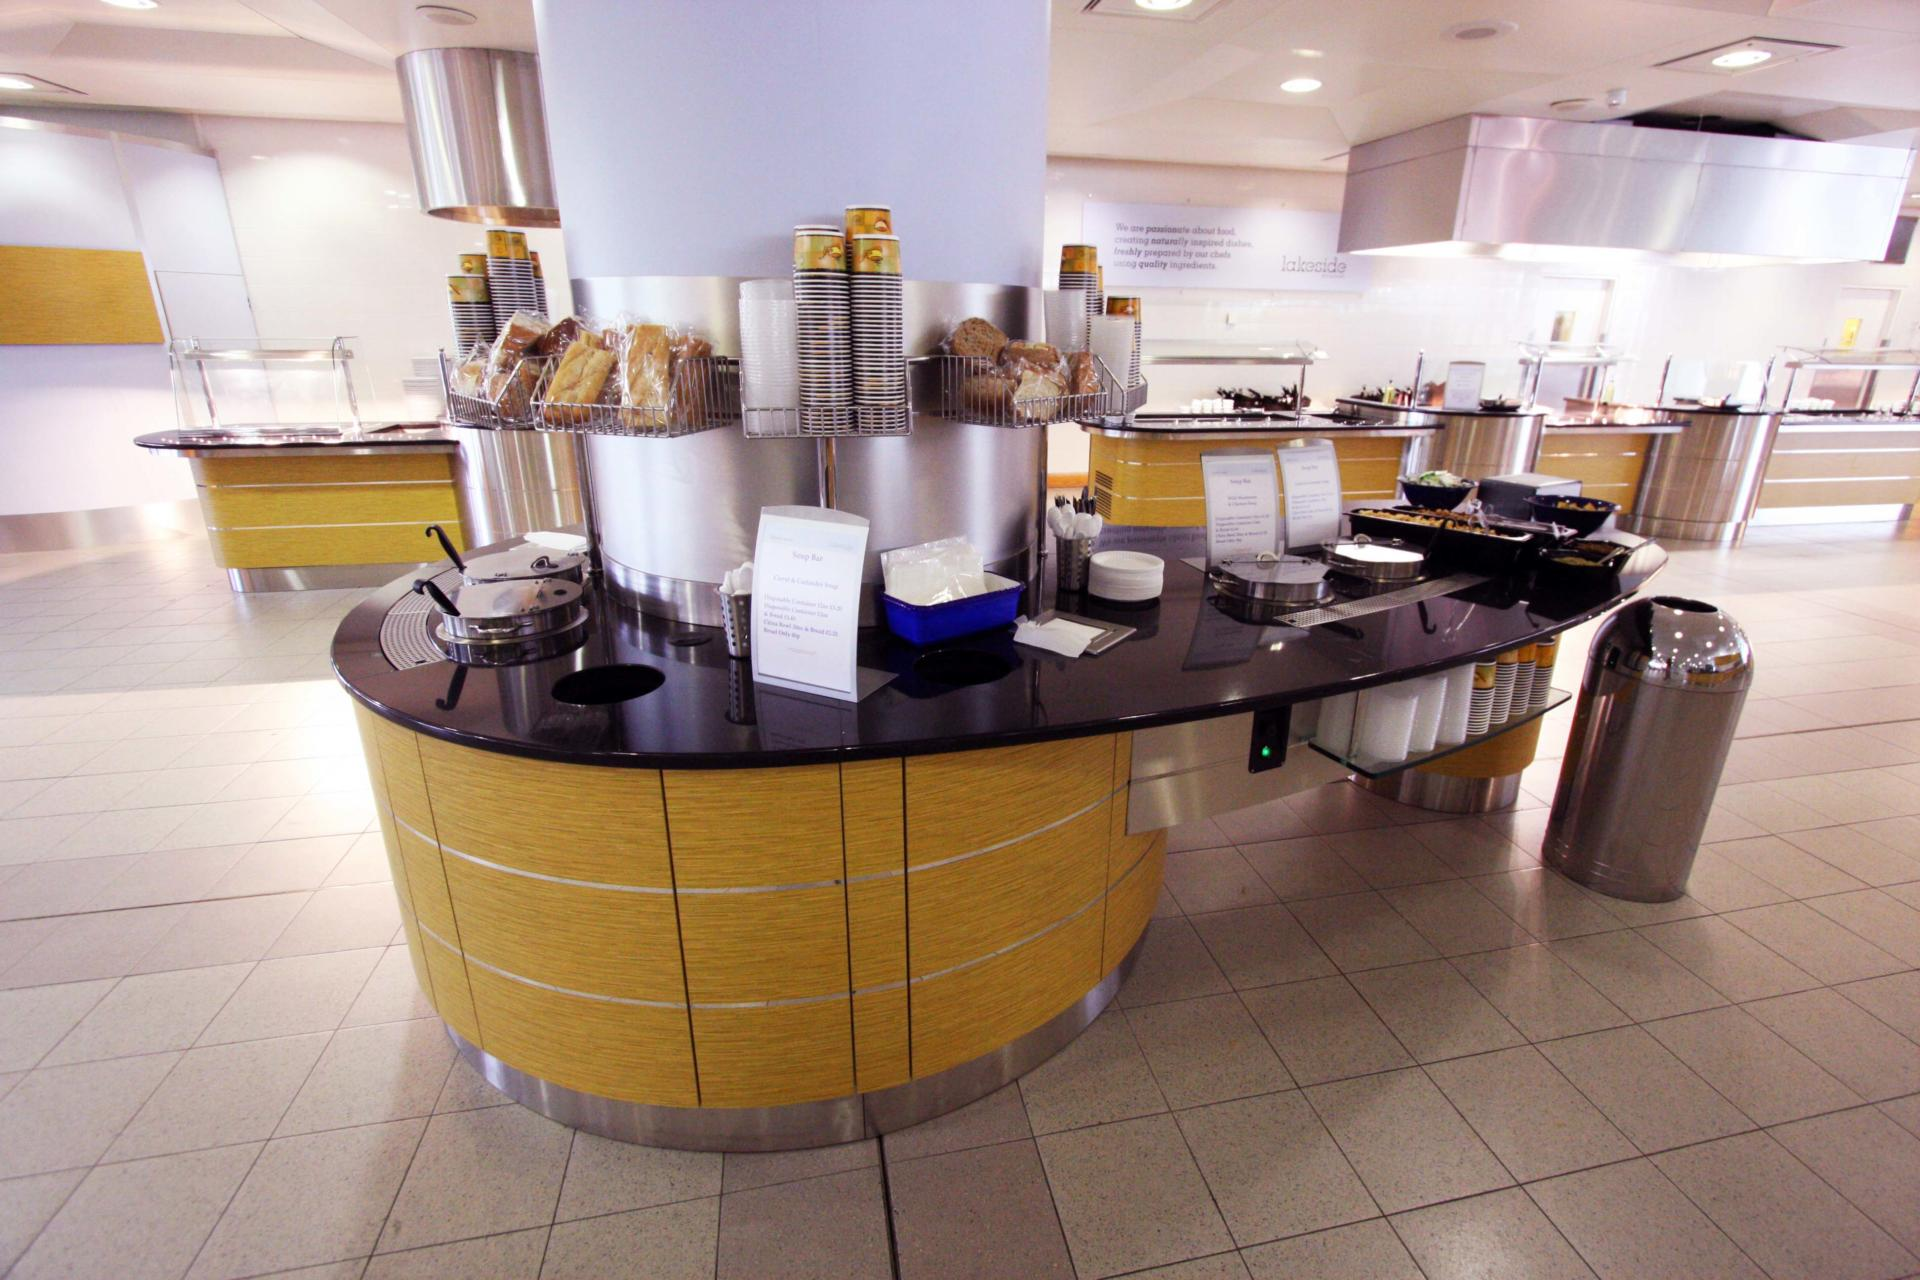 nationwide_swindon_staff restaurant_servery (23)